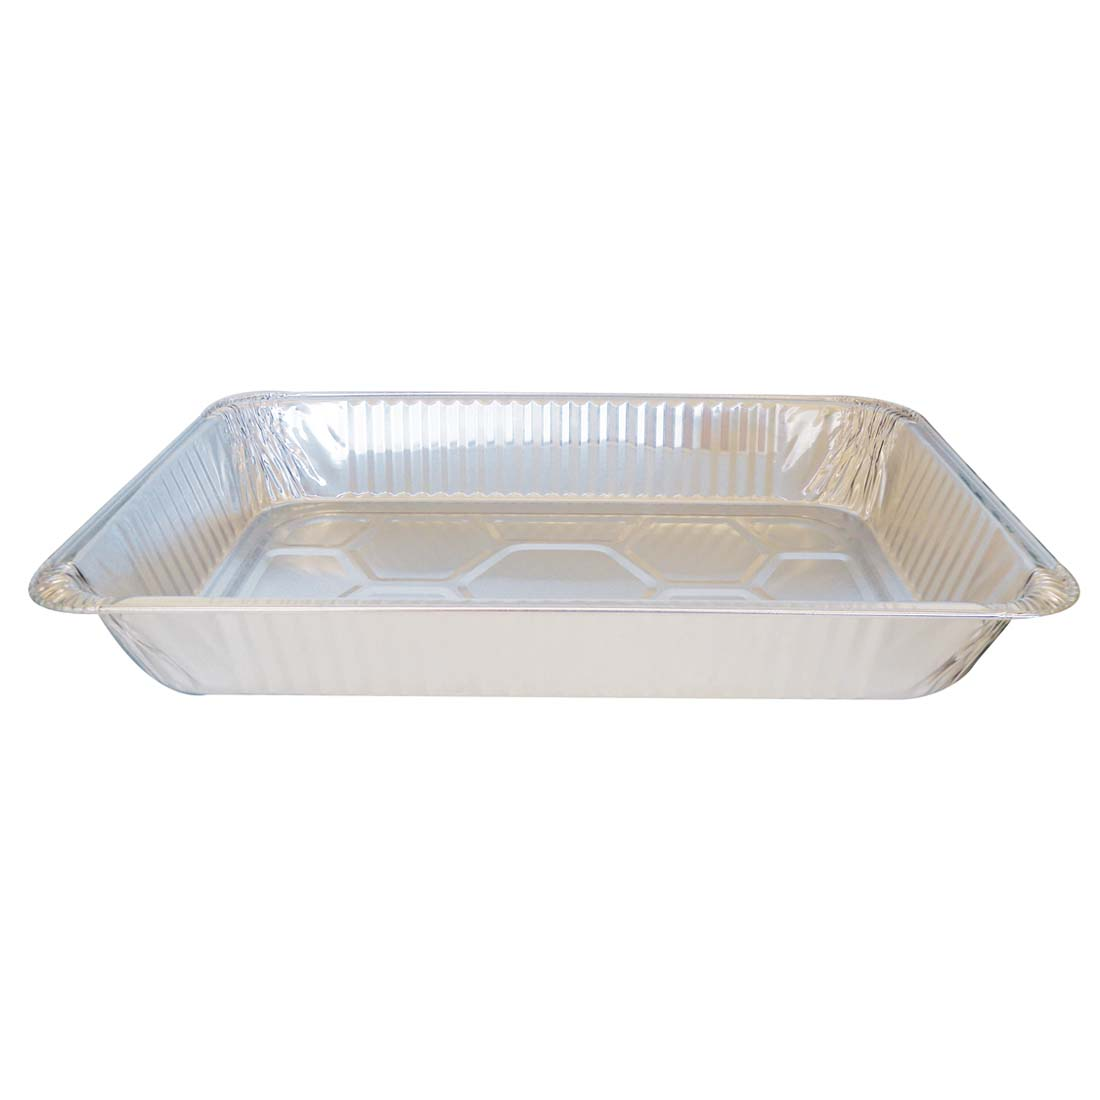 View PRIDE FOIL LASAGNA PAN FULL SIZE 21 X 13 X 3 INCHES DEEP